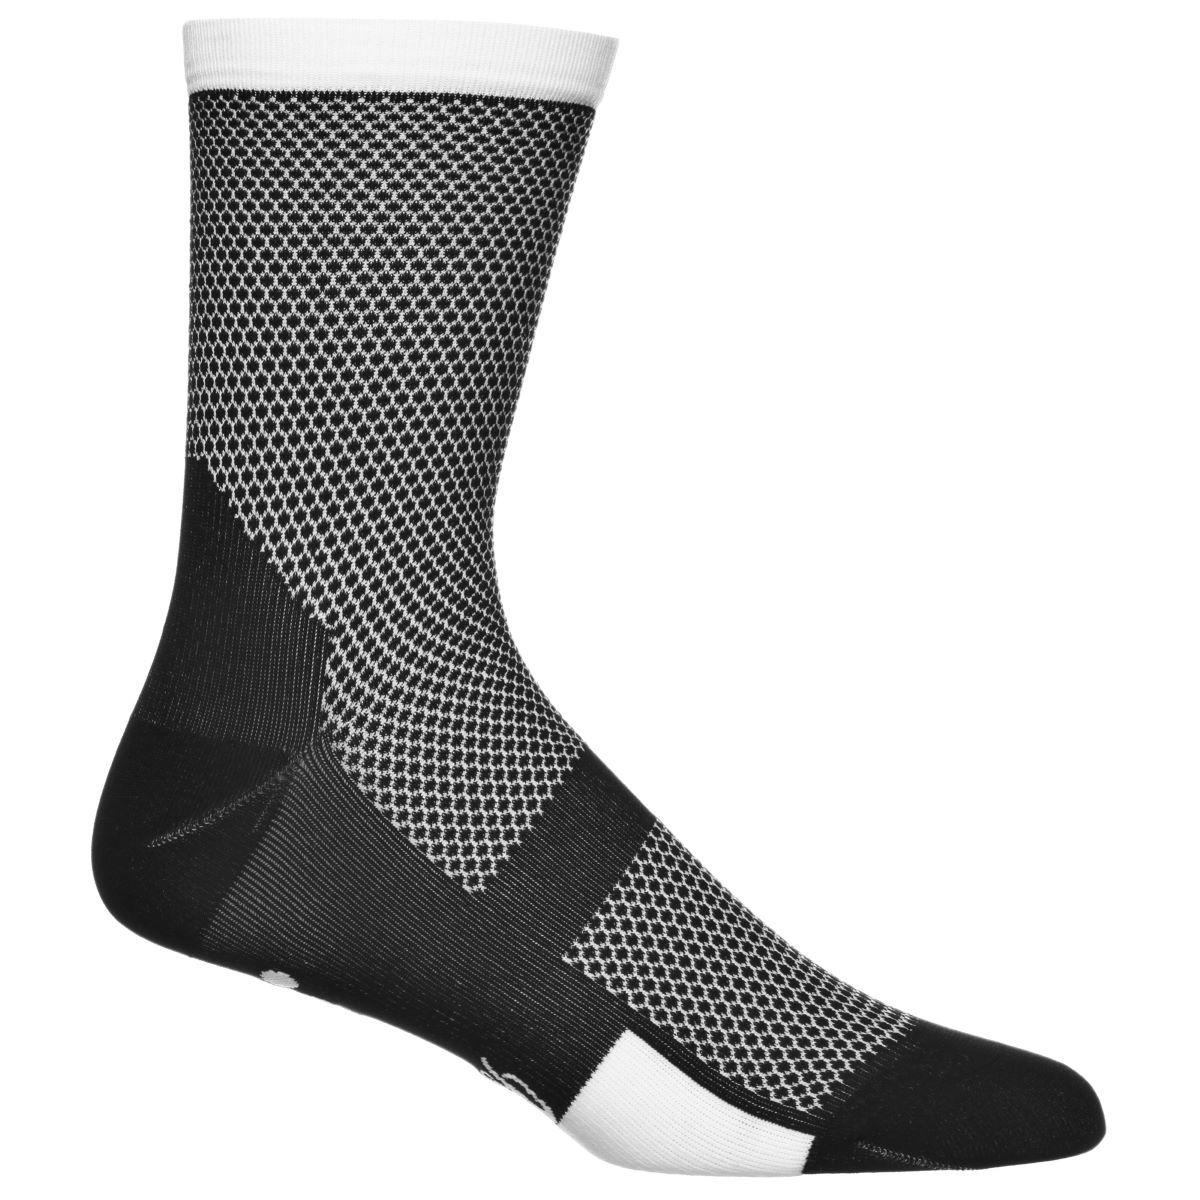 Calcetines Isadore Climbers - Calcetines de ciclismo